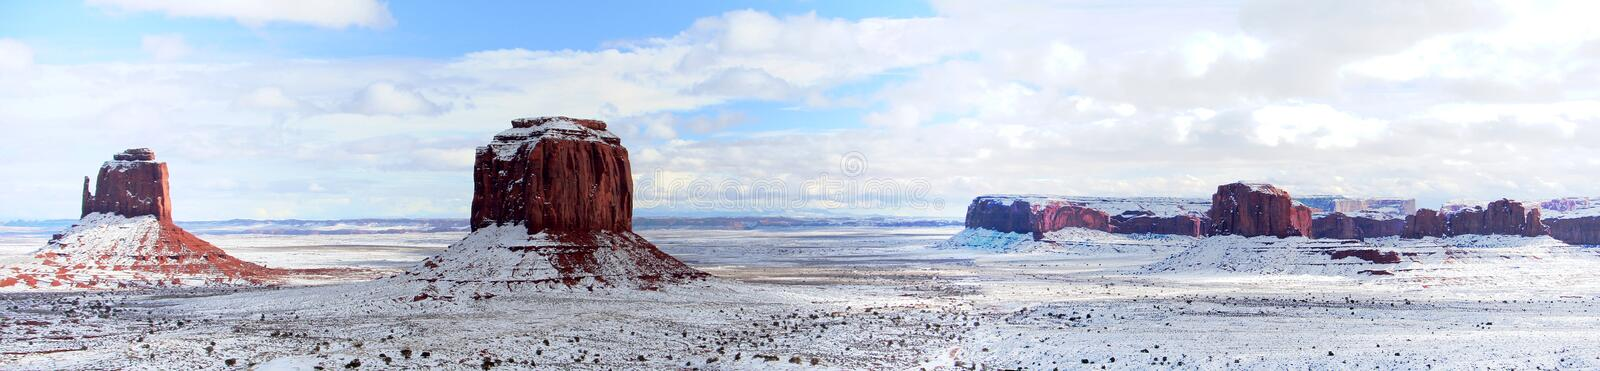 West Mitten en Merrick Buttes na sneeuwval, Monument Valley, Arizona royalty-vrije stock foto's